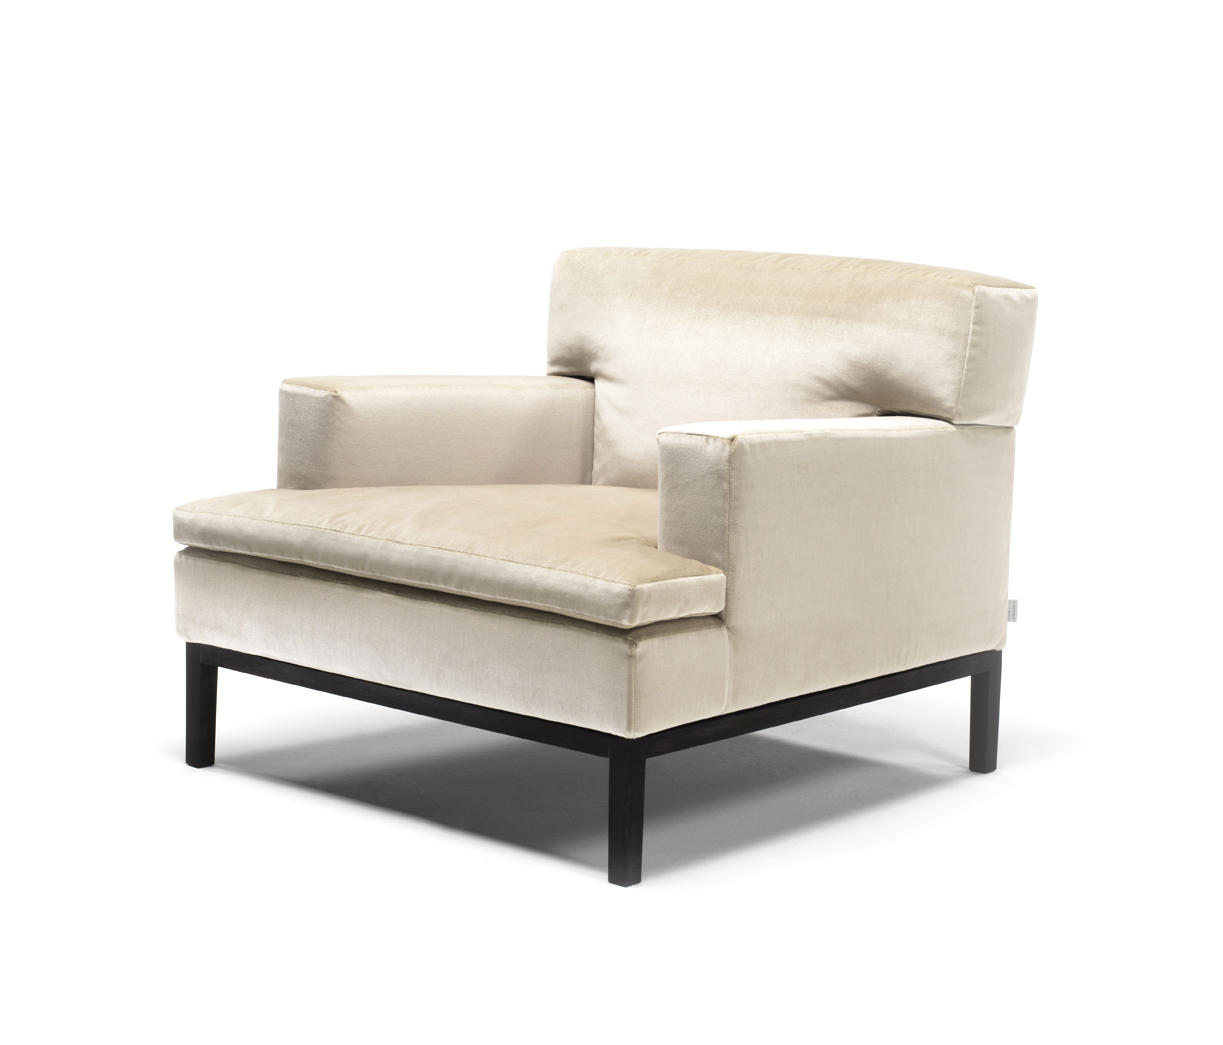 Living divani comfort sofisticato : Marquise lounge chairs from living divani architonic